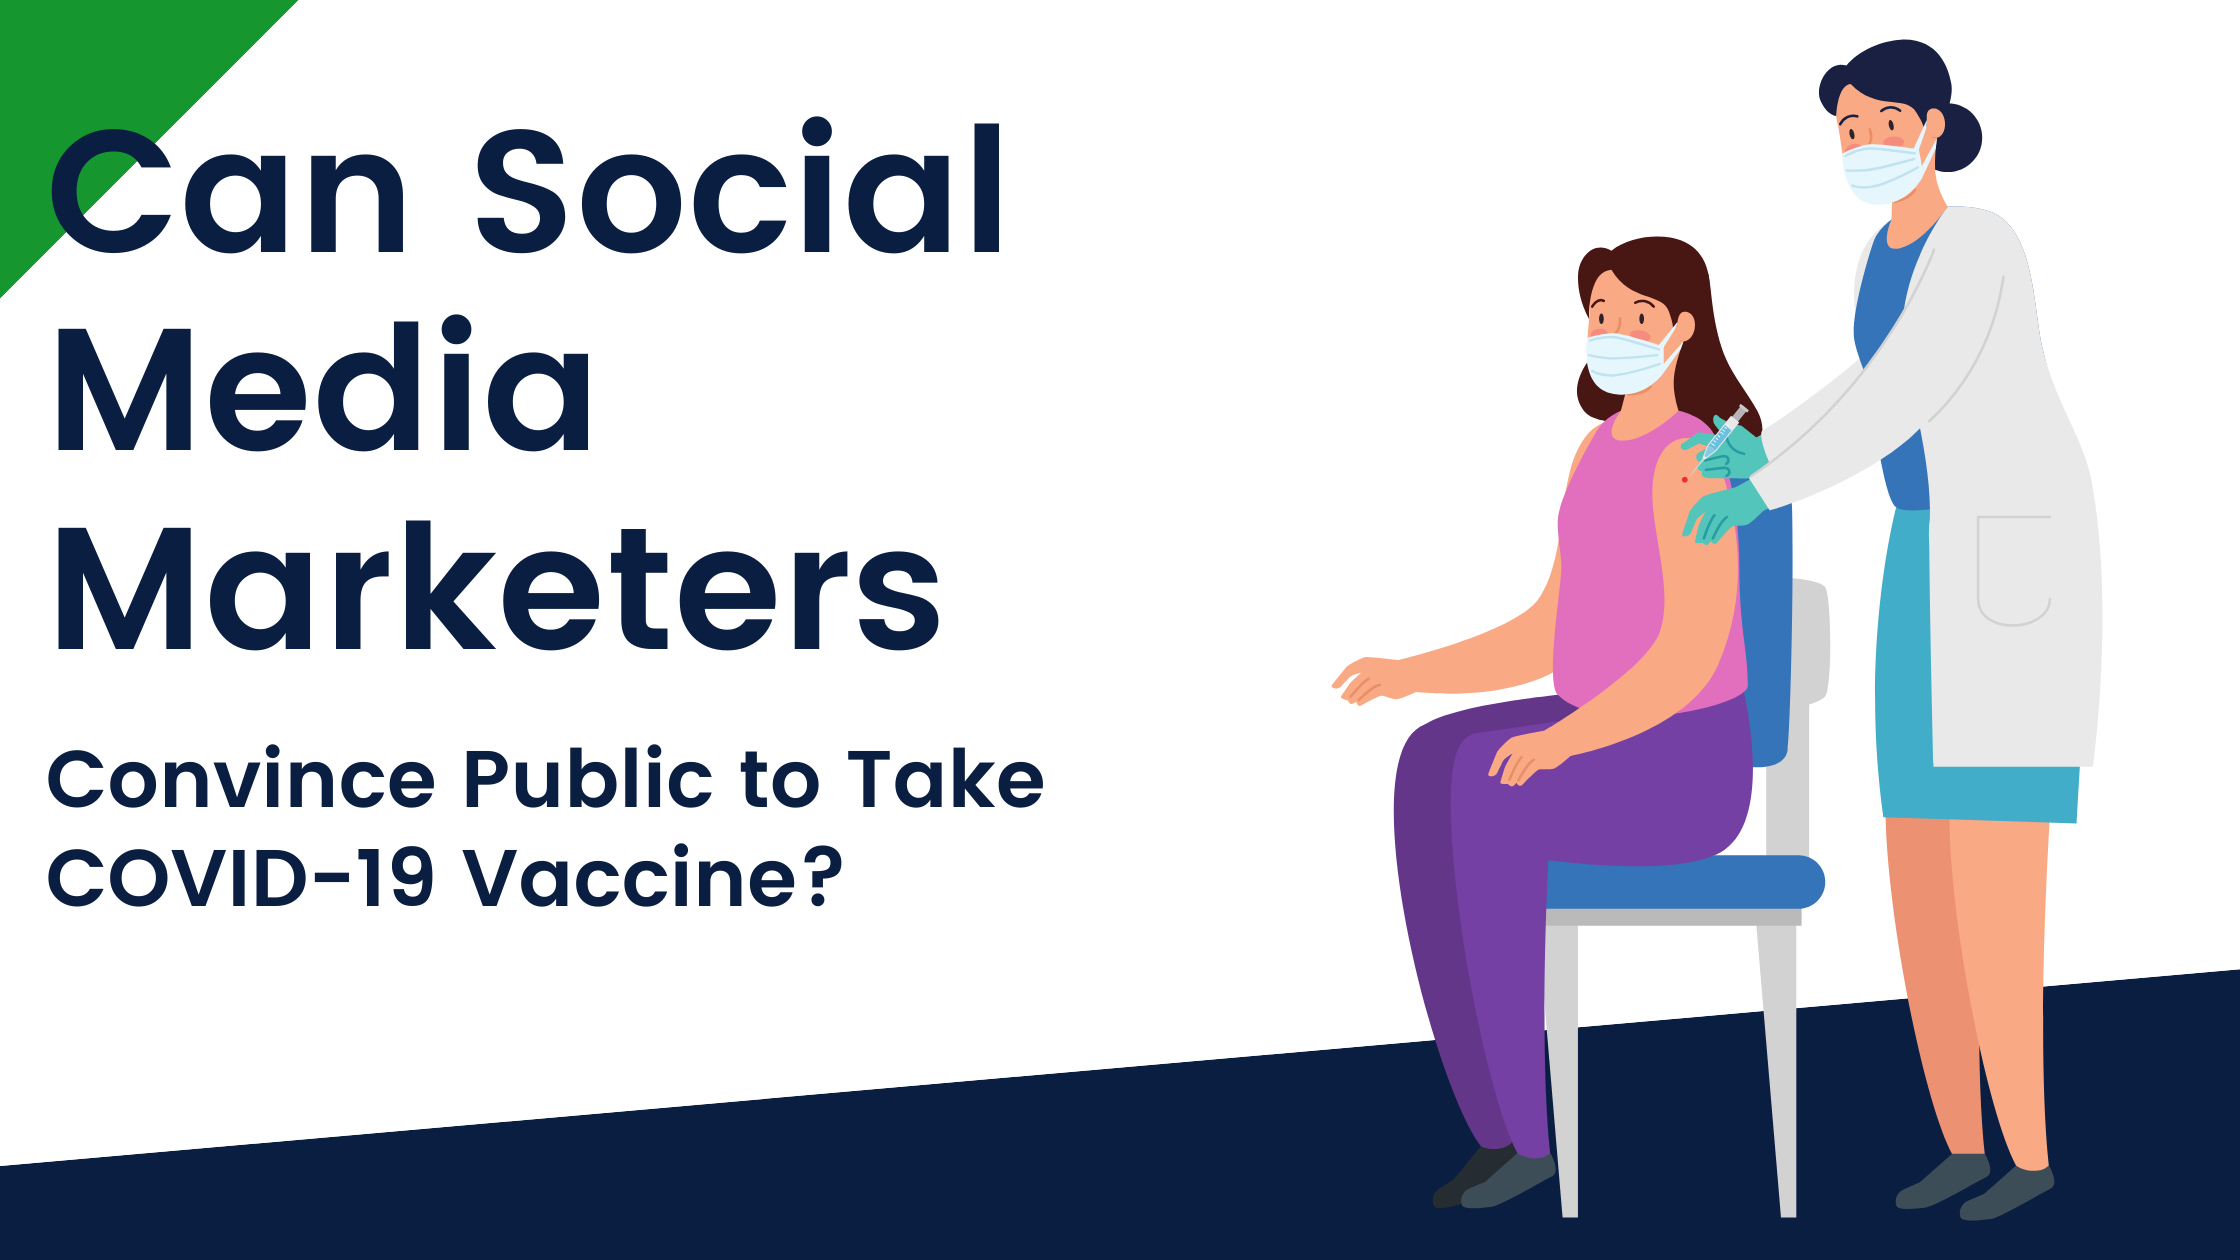 Can Social Media Marketers Convince Public to Take COVID-19 Vaccine?